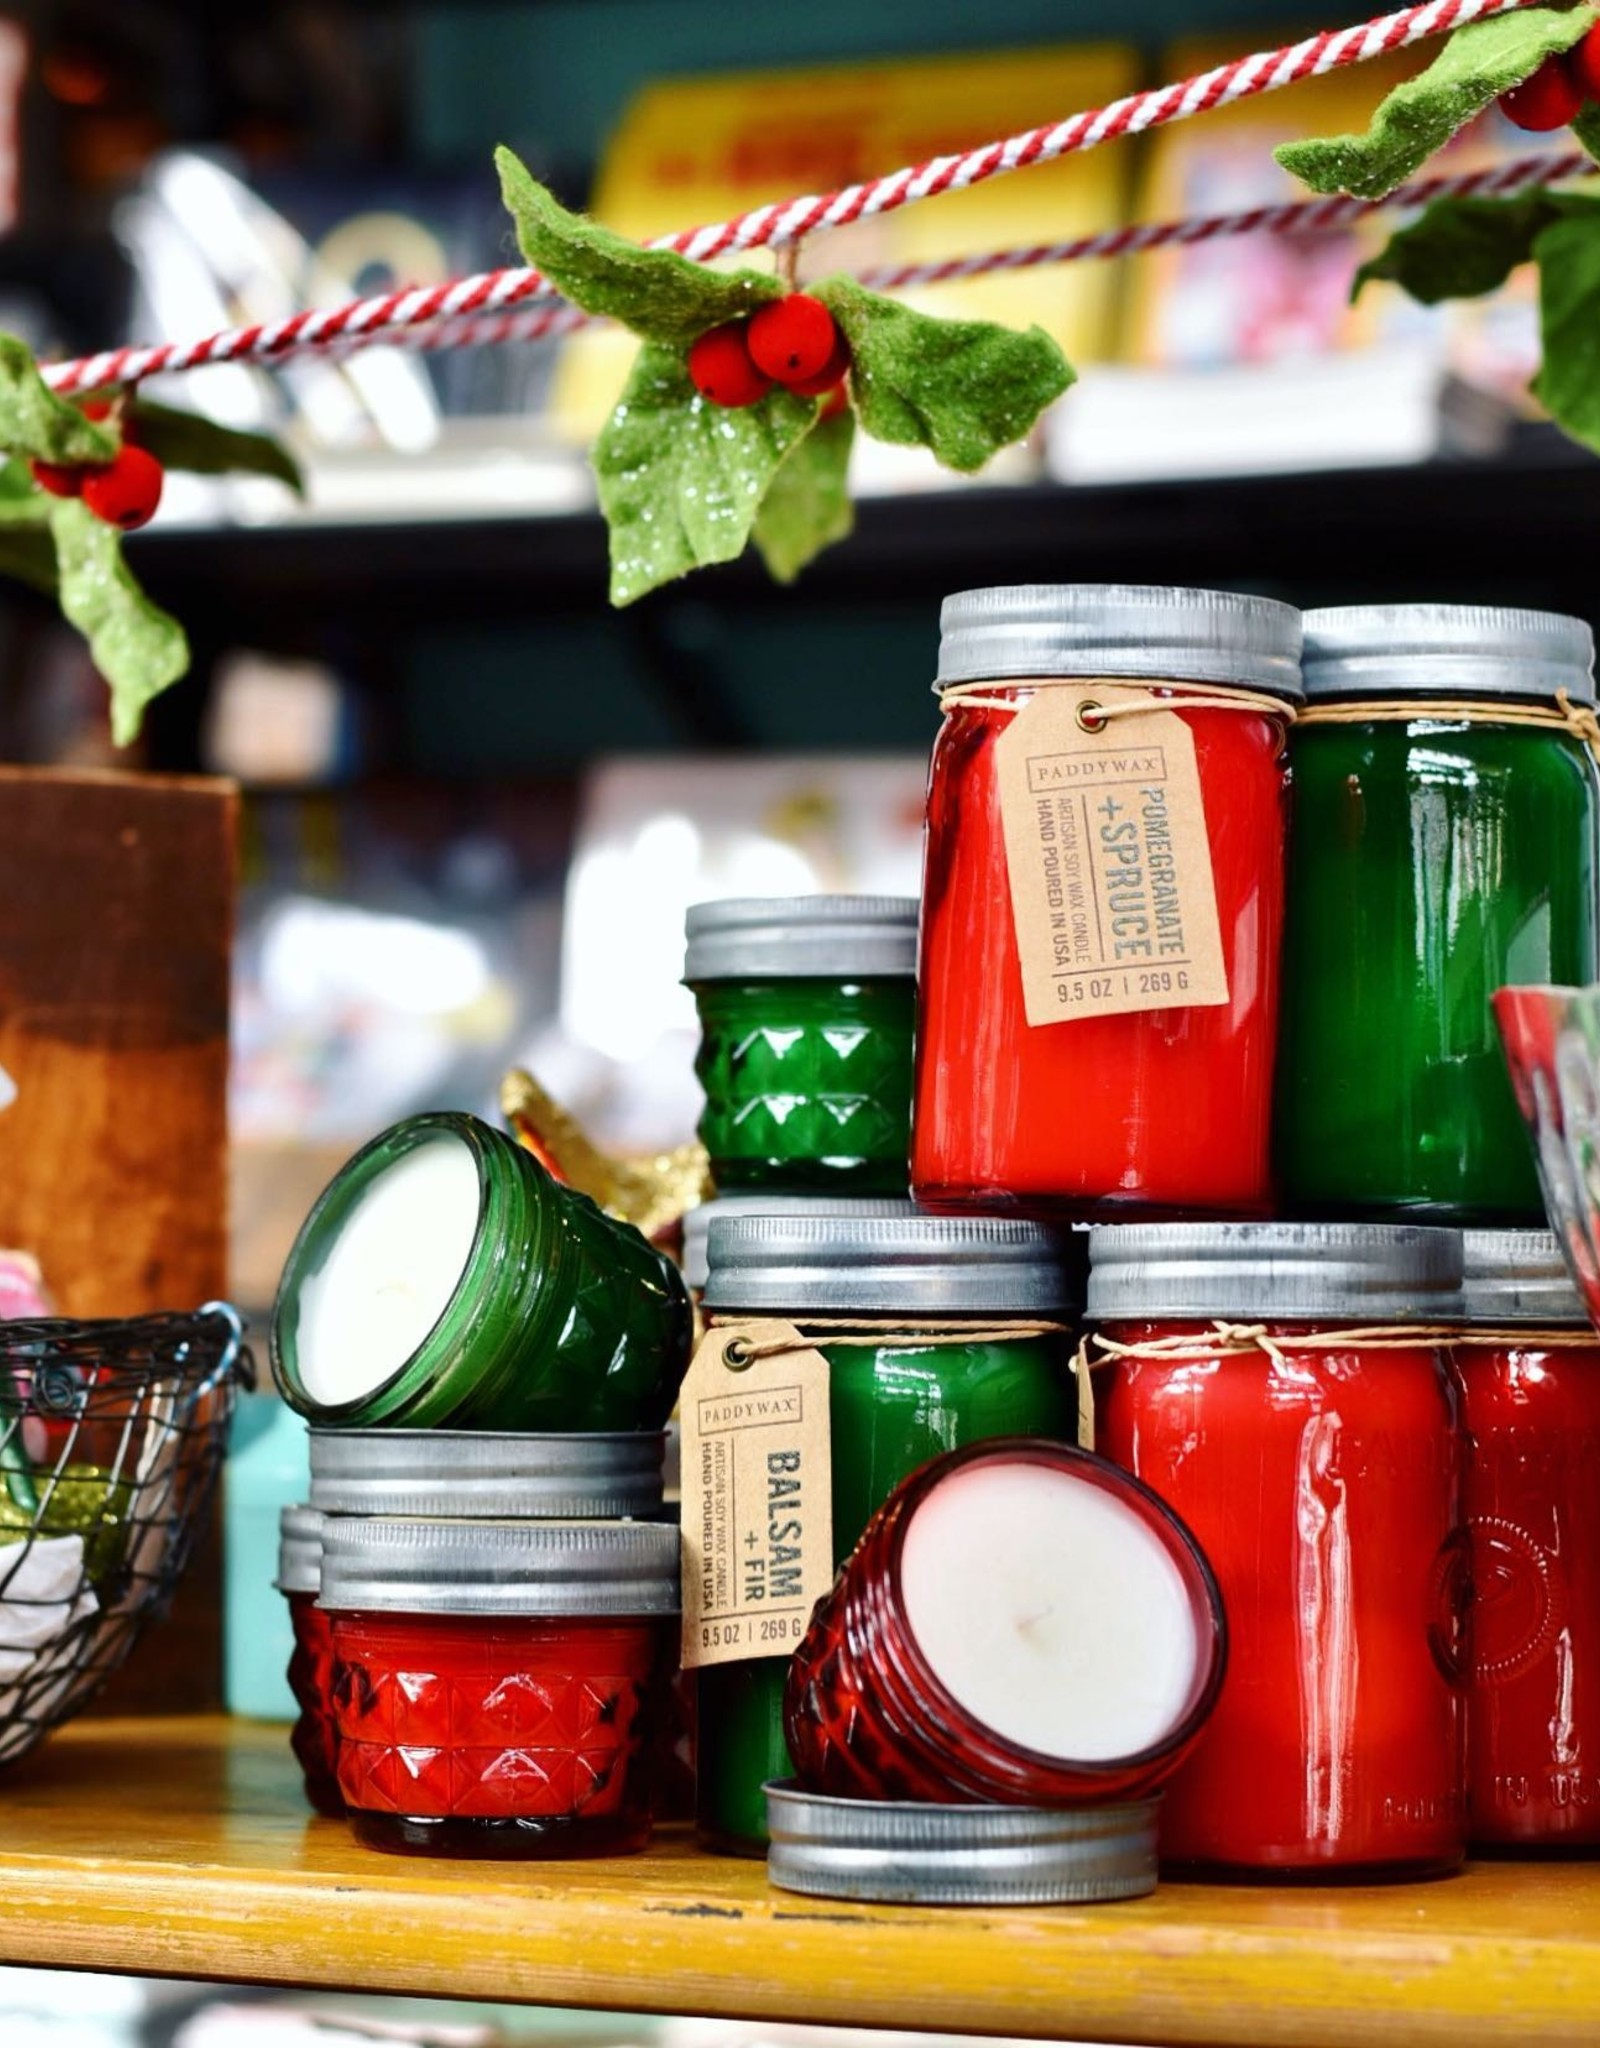 Paddywax Relish Holiday 9.5oz Candles